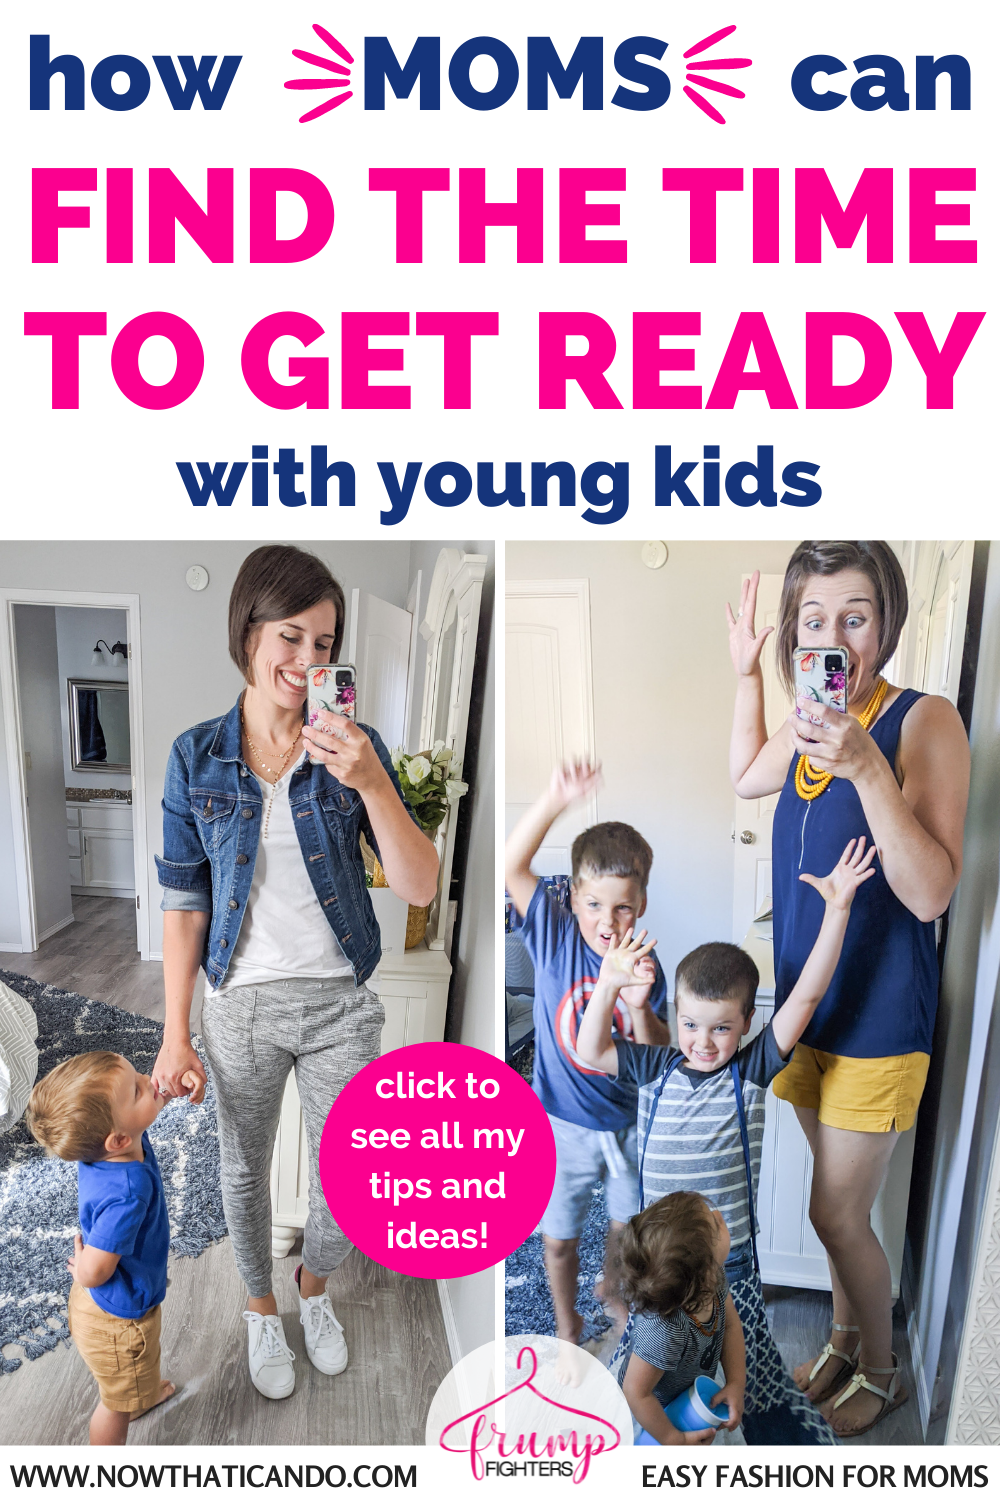 How to Get Ready in the Morning with Small Kids